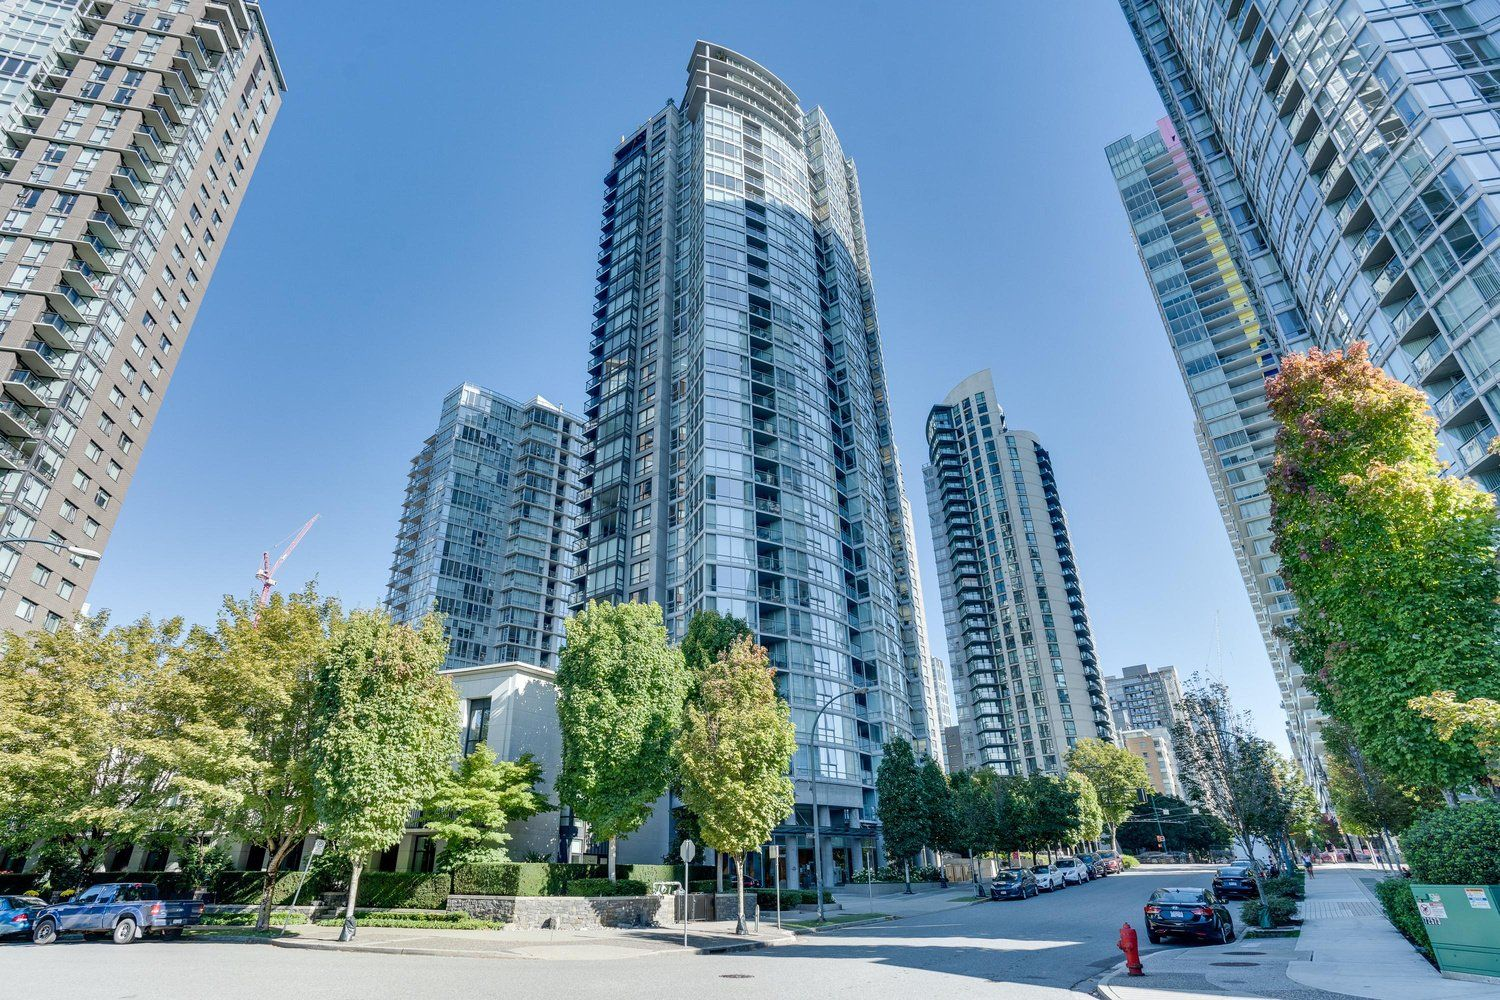 """Main Photo: 1903 1495 RICHARDS Street in Vancouver: Yaletown Condo for sale in """"Azura Two"""" (Vancouver West)  : MLS®# R2497124"""